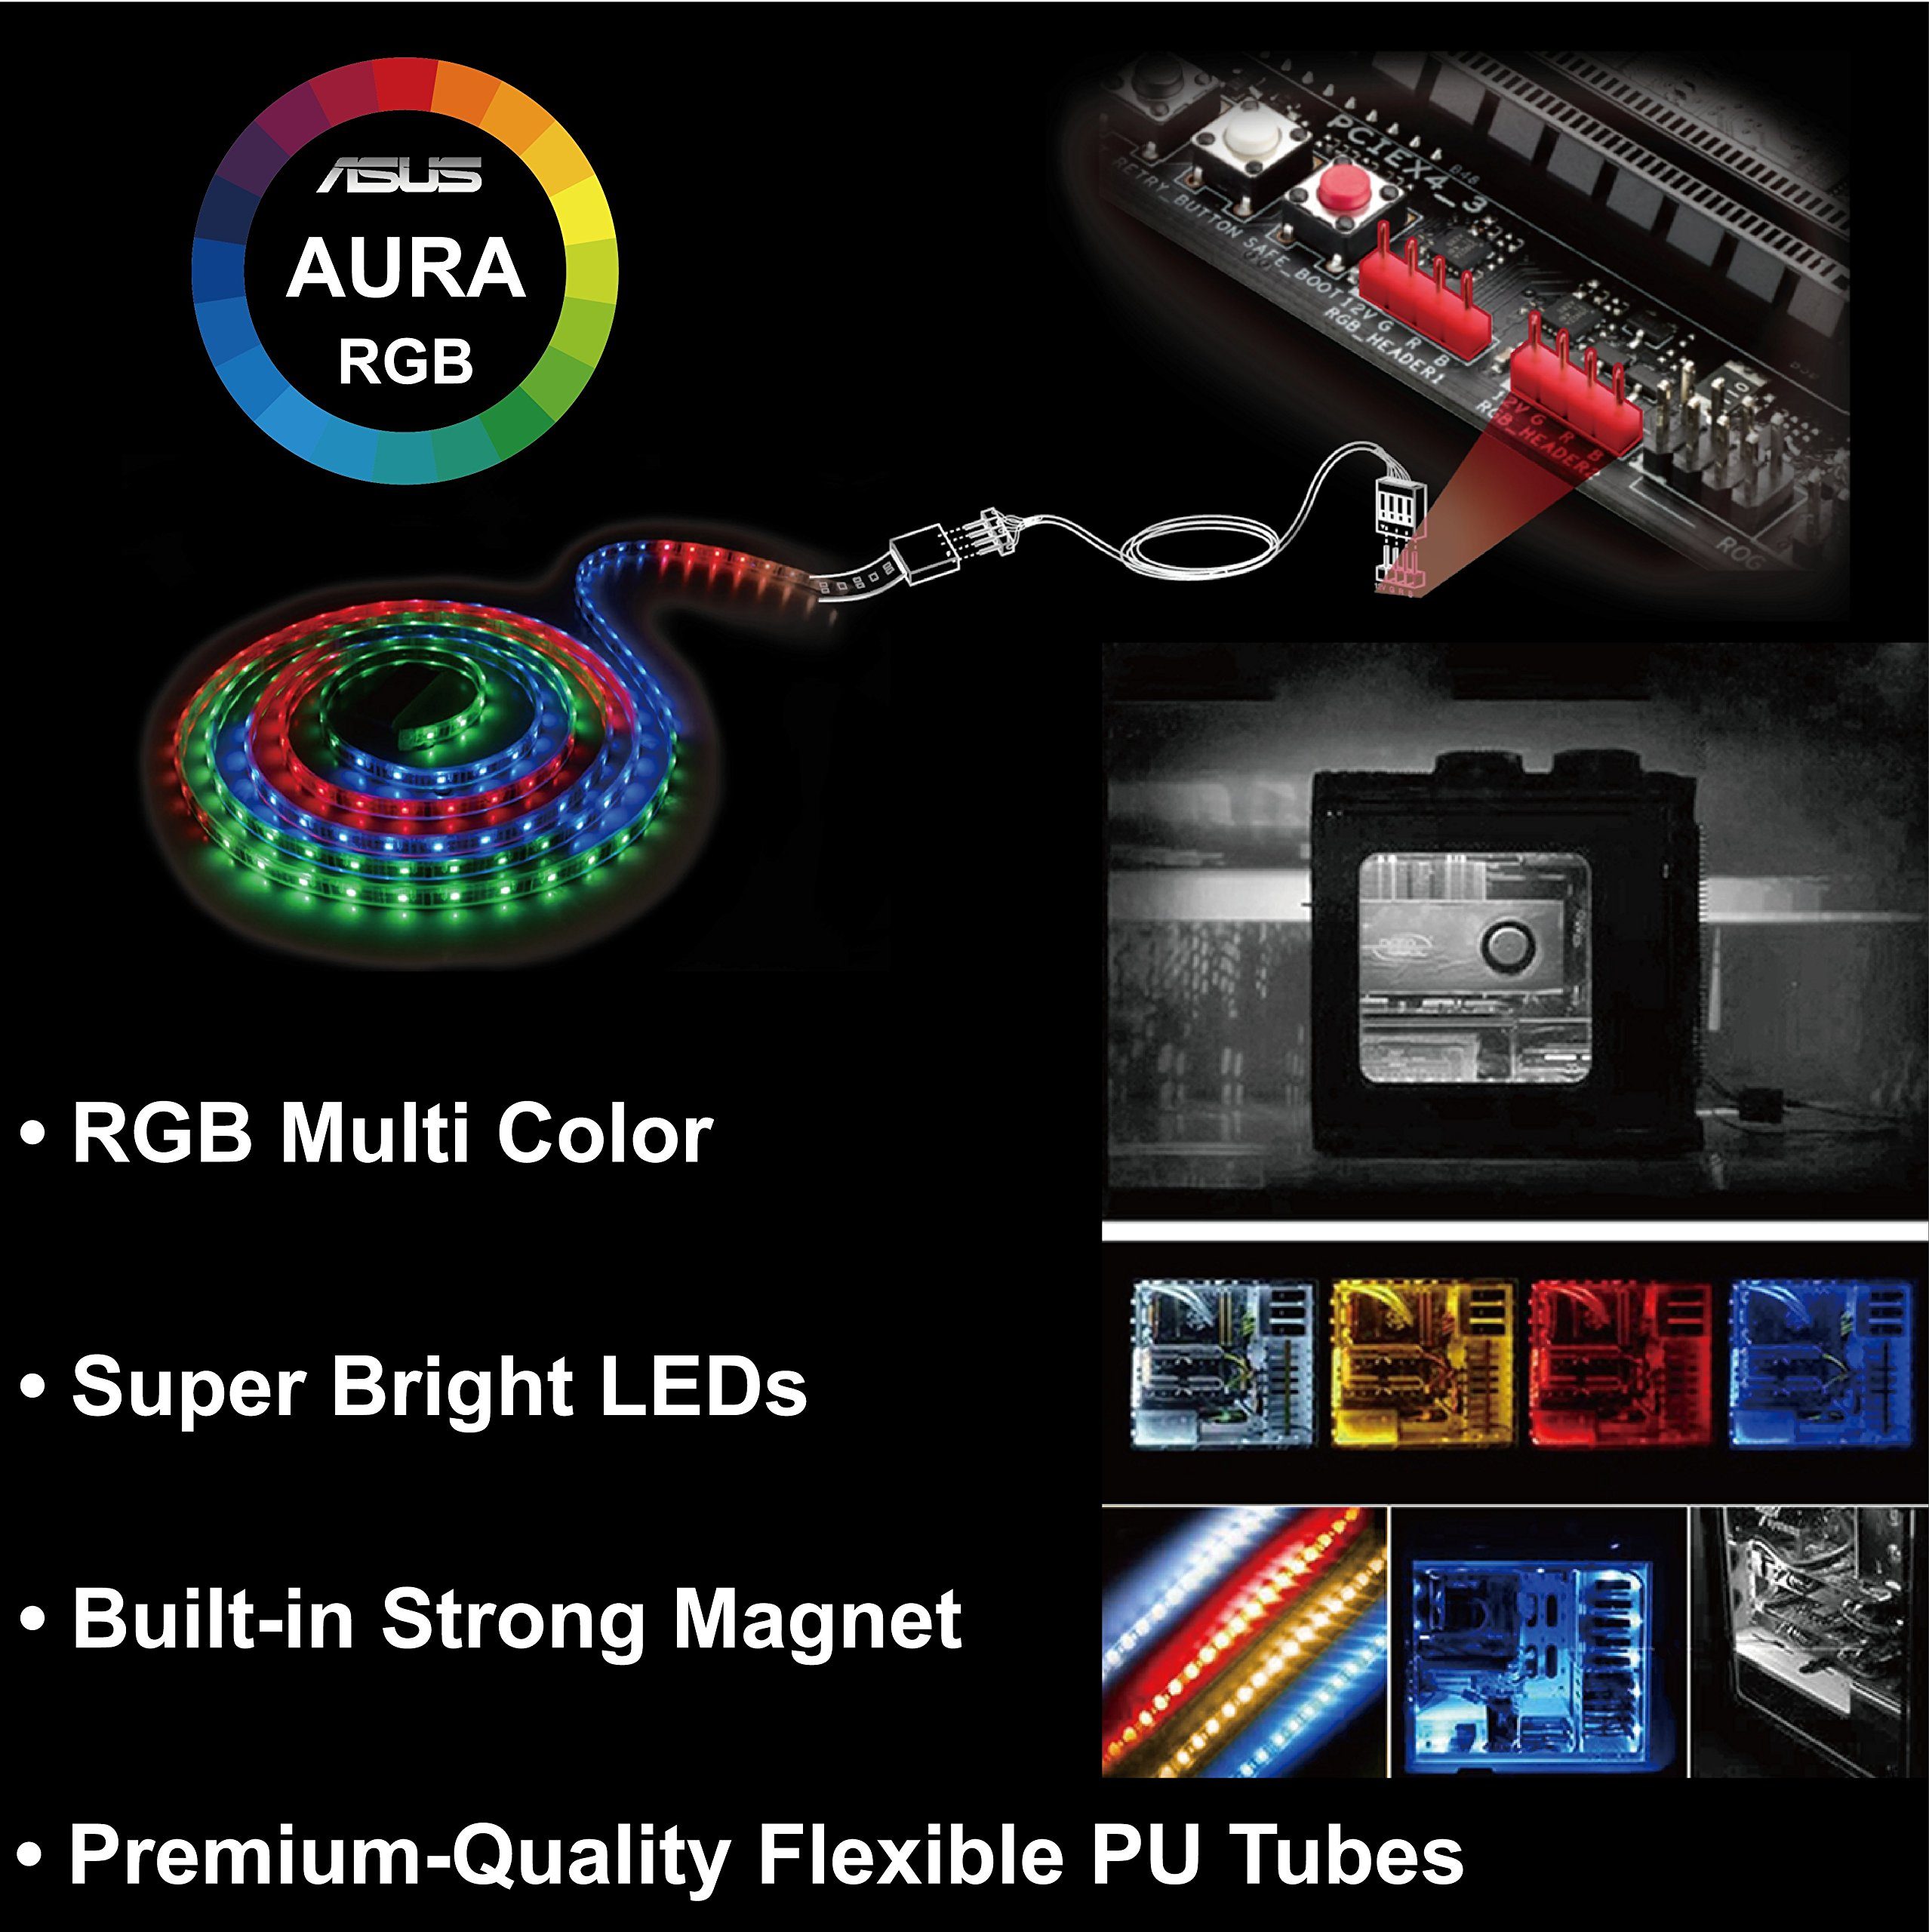 Extended Computer Magnetic LED Strip - 2pcs Magnetic RGB LED Strip Light for ASUS Aura RGB/MSI Mystic Light/ASROCK Aura RGB Motherboard (12V 4-Pin RGB LED headers ONLY) by airgoo (Image #4)